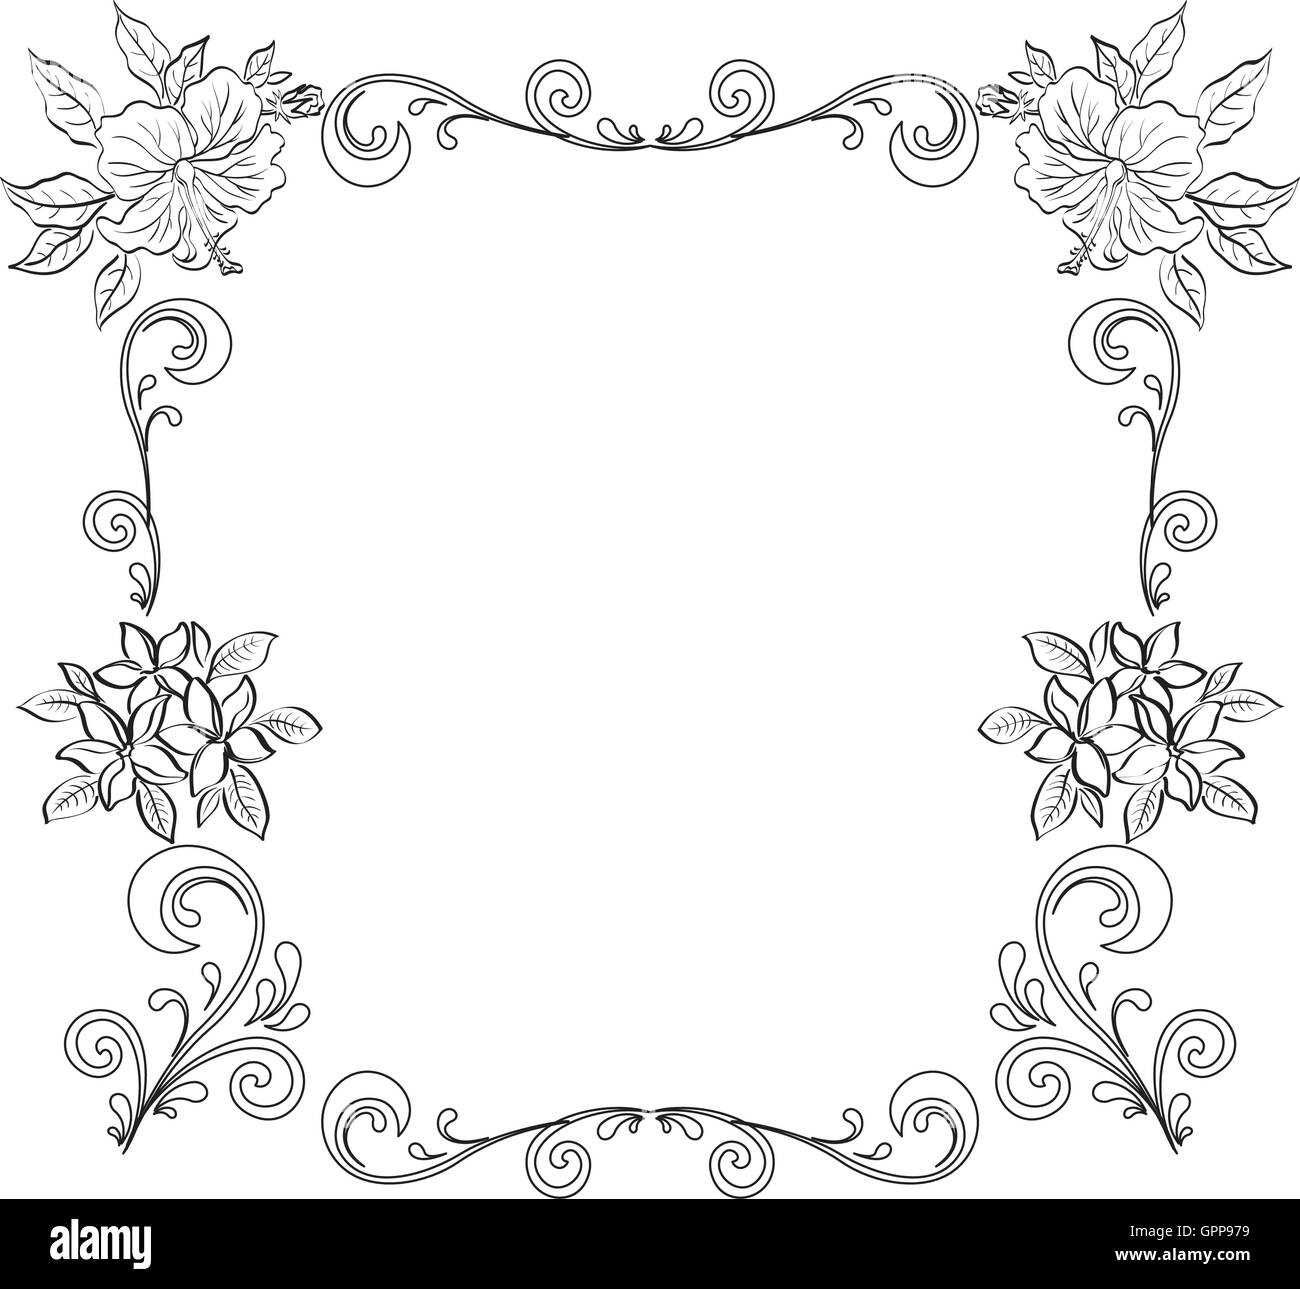 Abstract Floral Background Outline Stock Vector Art